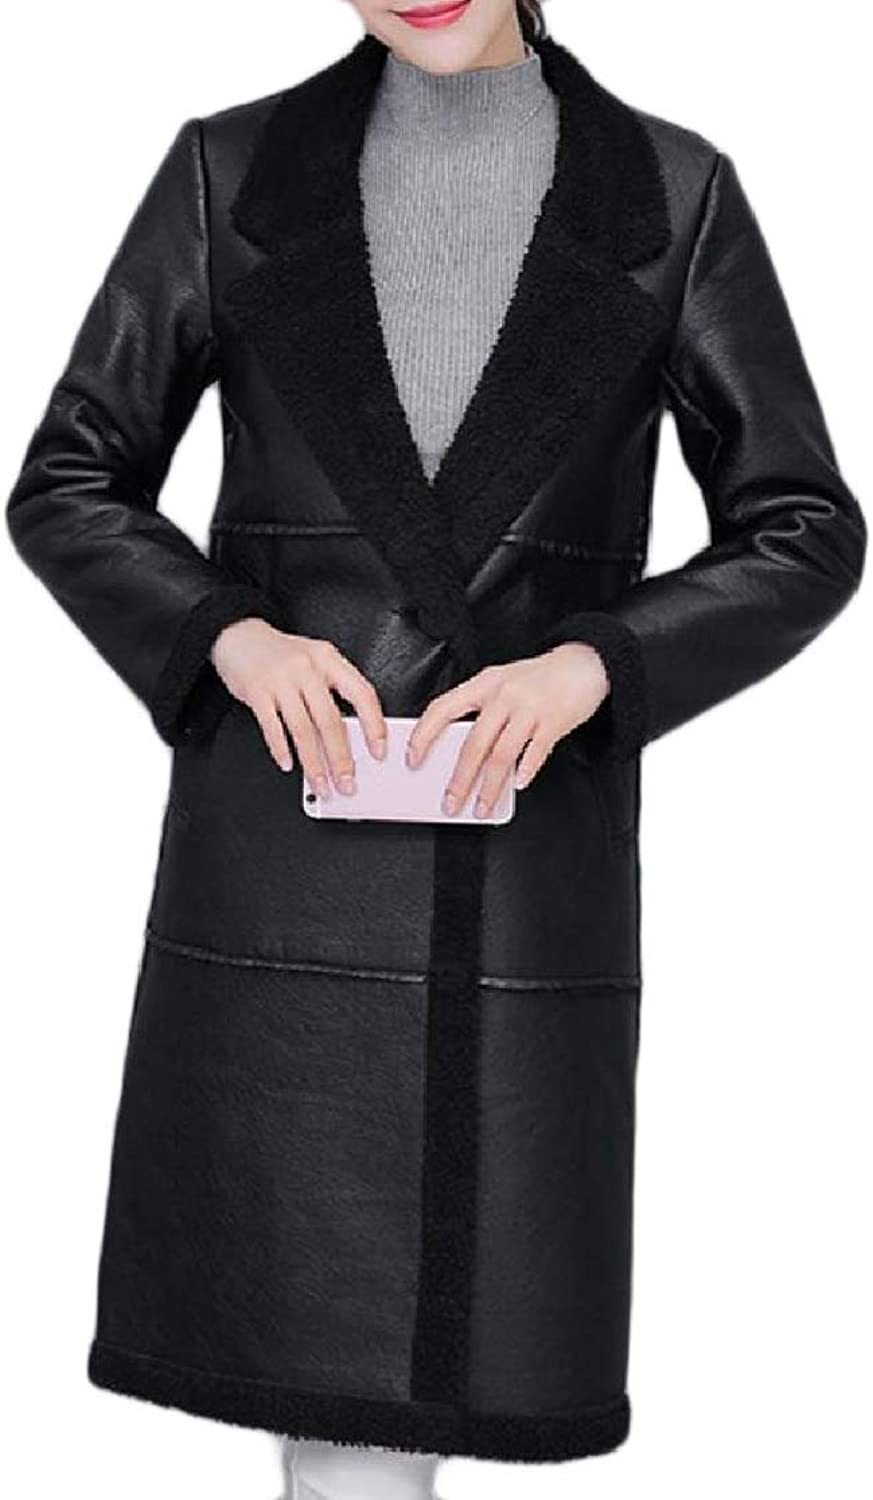 color&W Women's Velvet Stylish Pocketed Fit Warm MidLong Lapel Outwear Coat